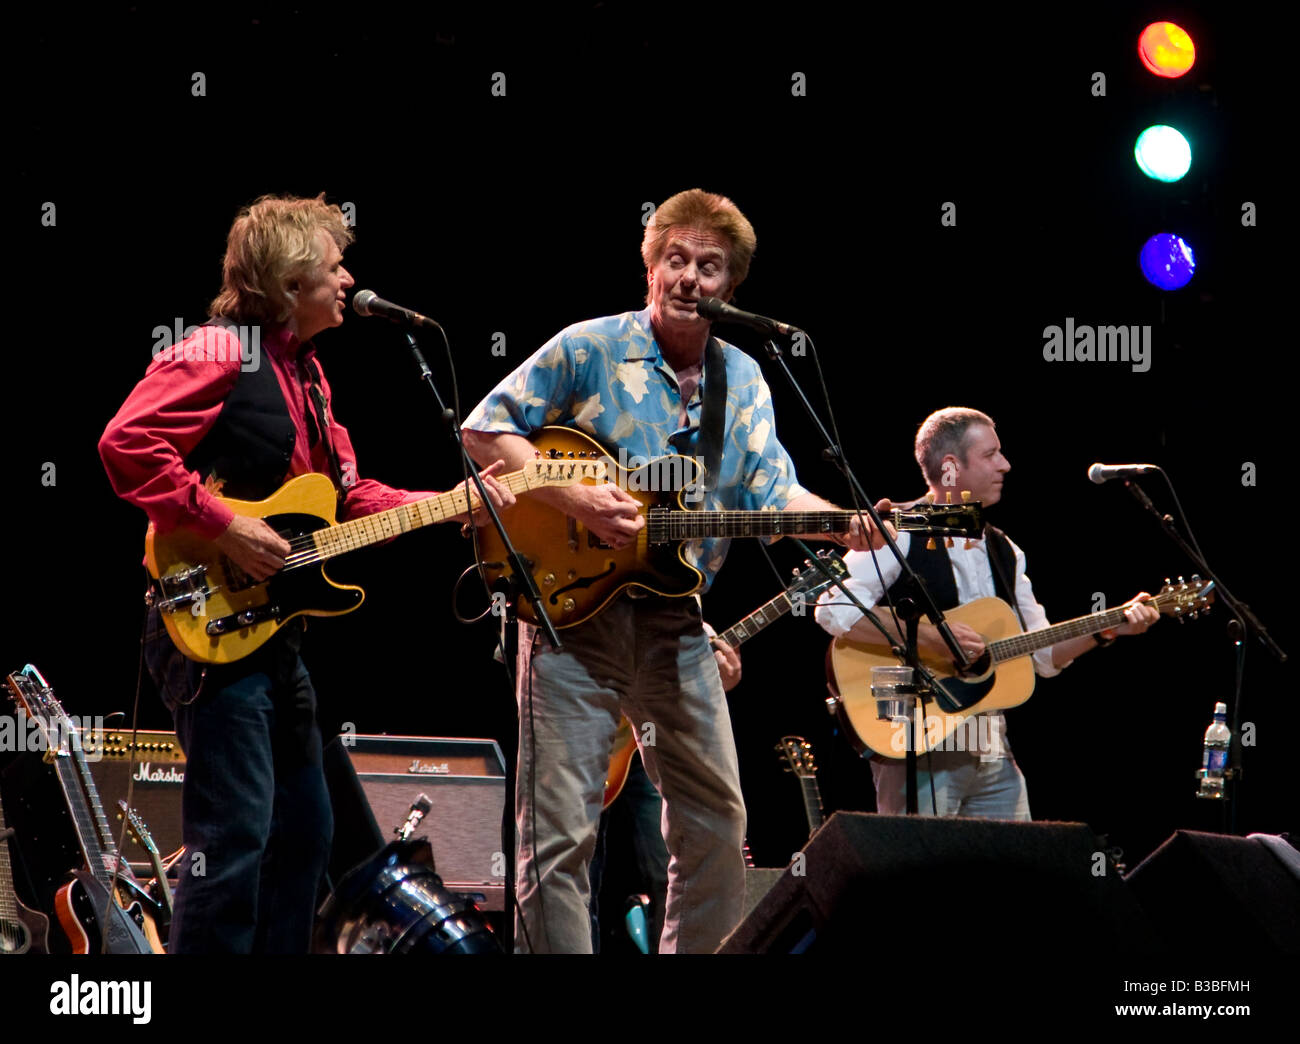 Joe Brown with special guest Dave Edmunds at Fairport's Cropredy Convention music festival 2008 near Banbury - Stock Image